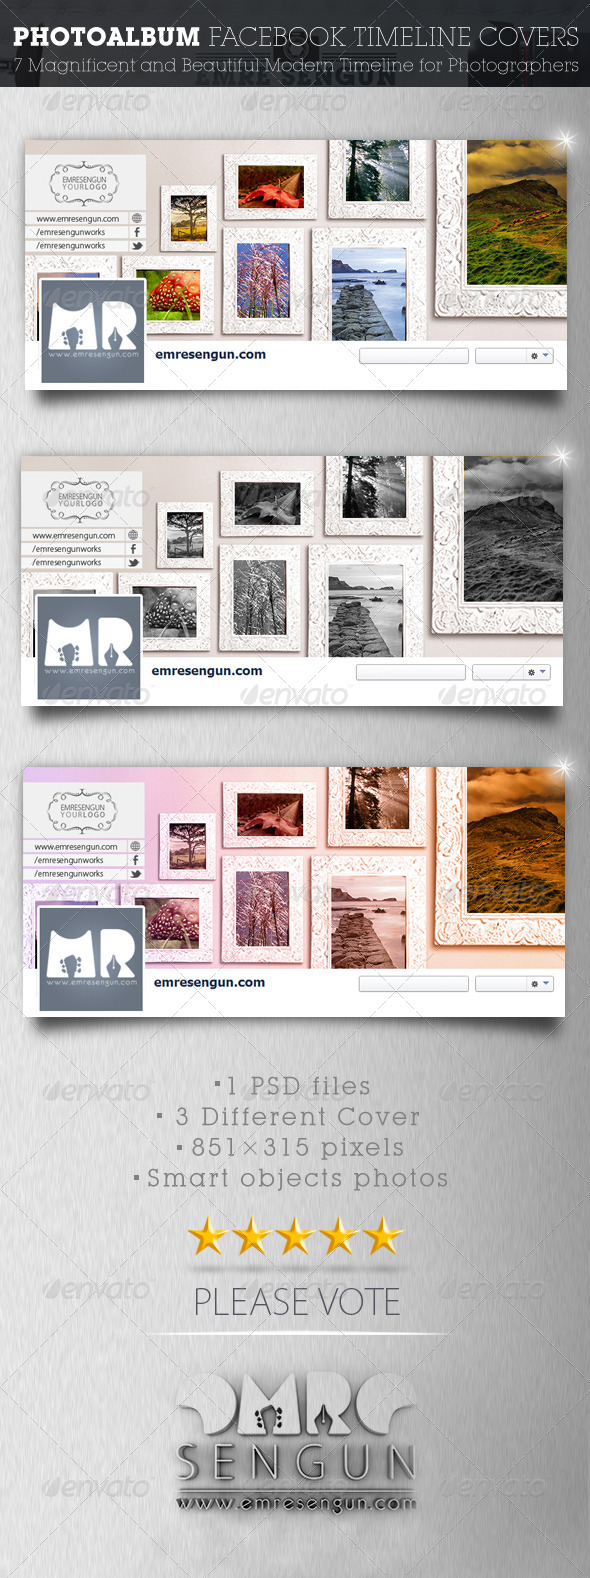 GraphicRiver Photoalbum Facebook Timeline Covers 7466053